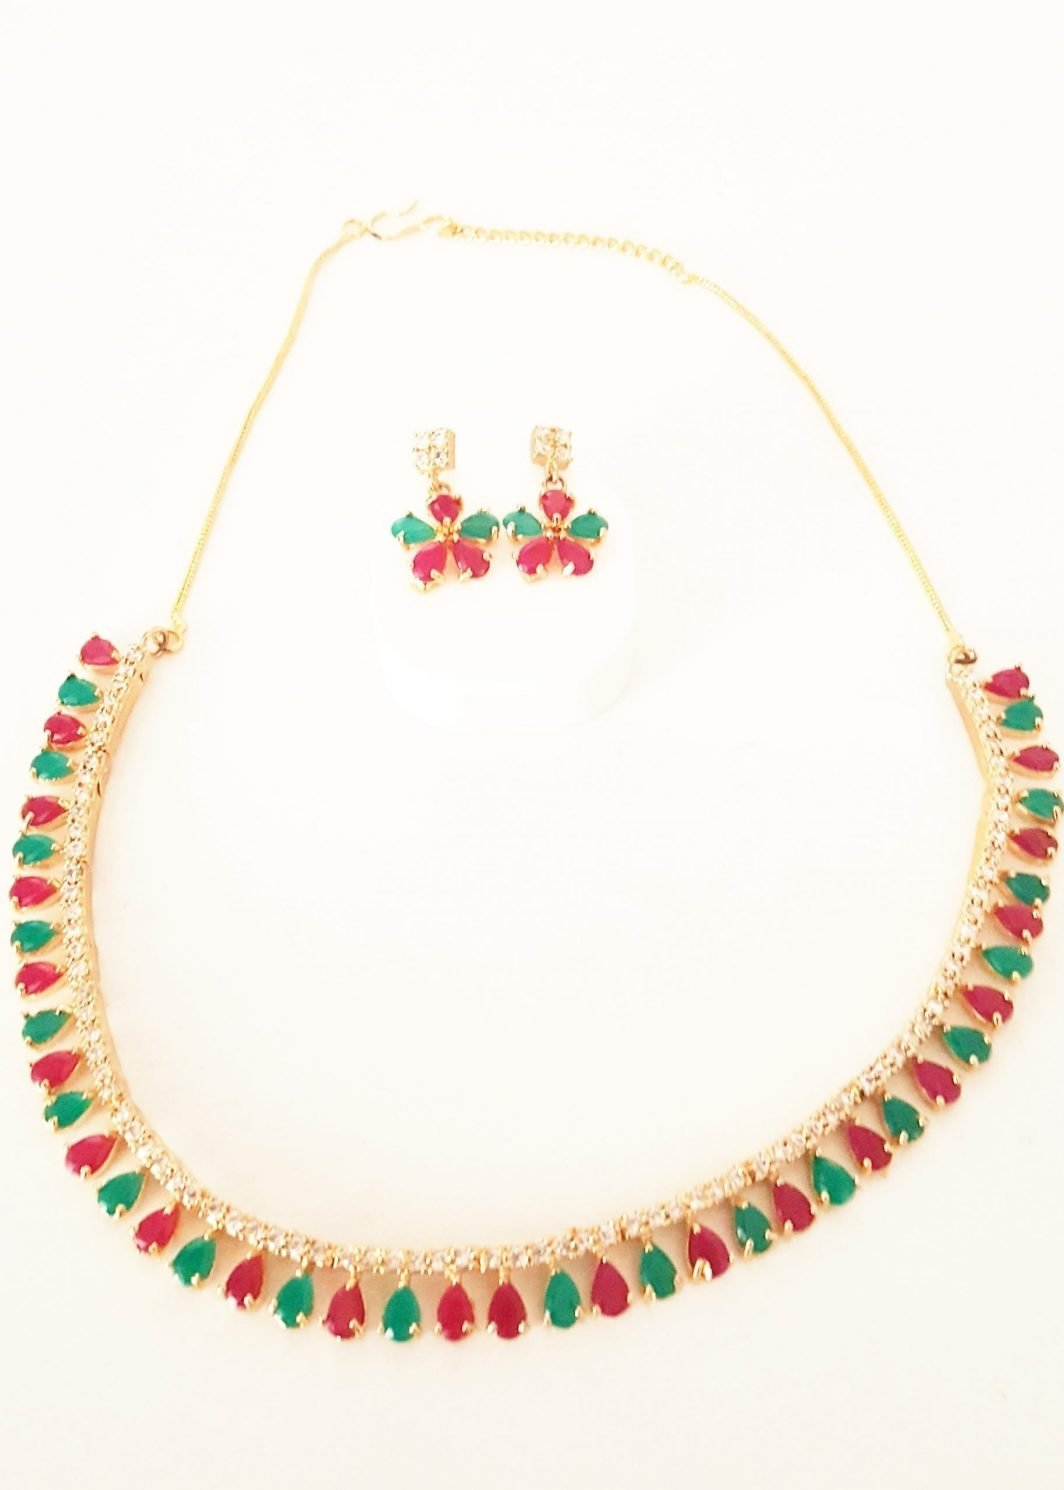 Coloured Stones Necklace with Earrings